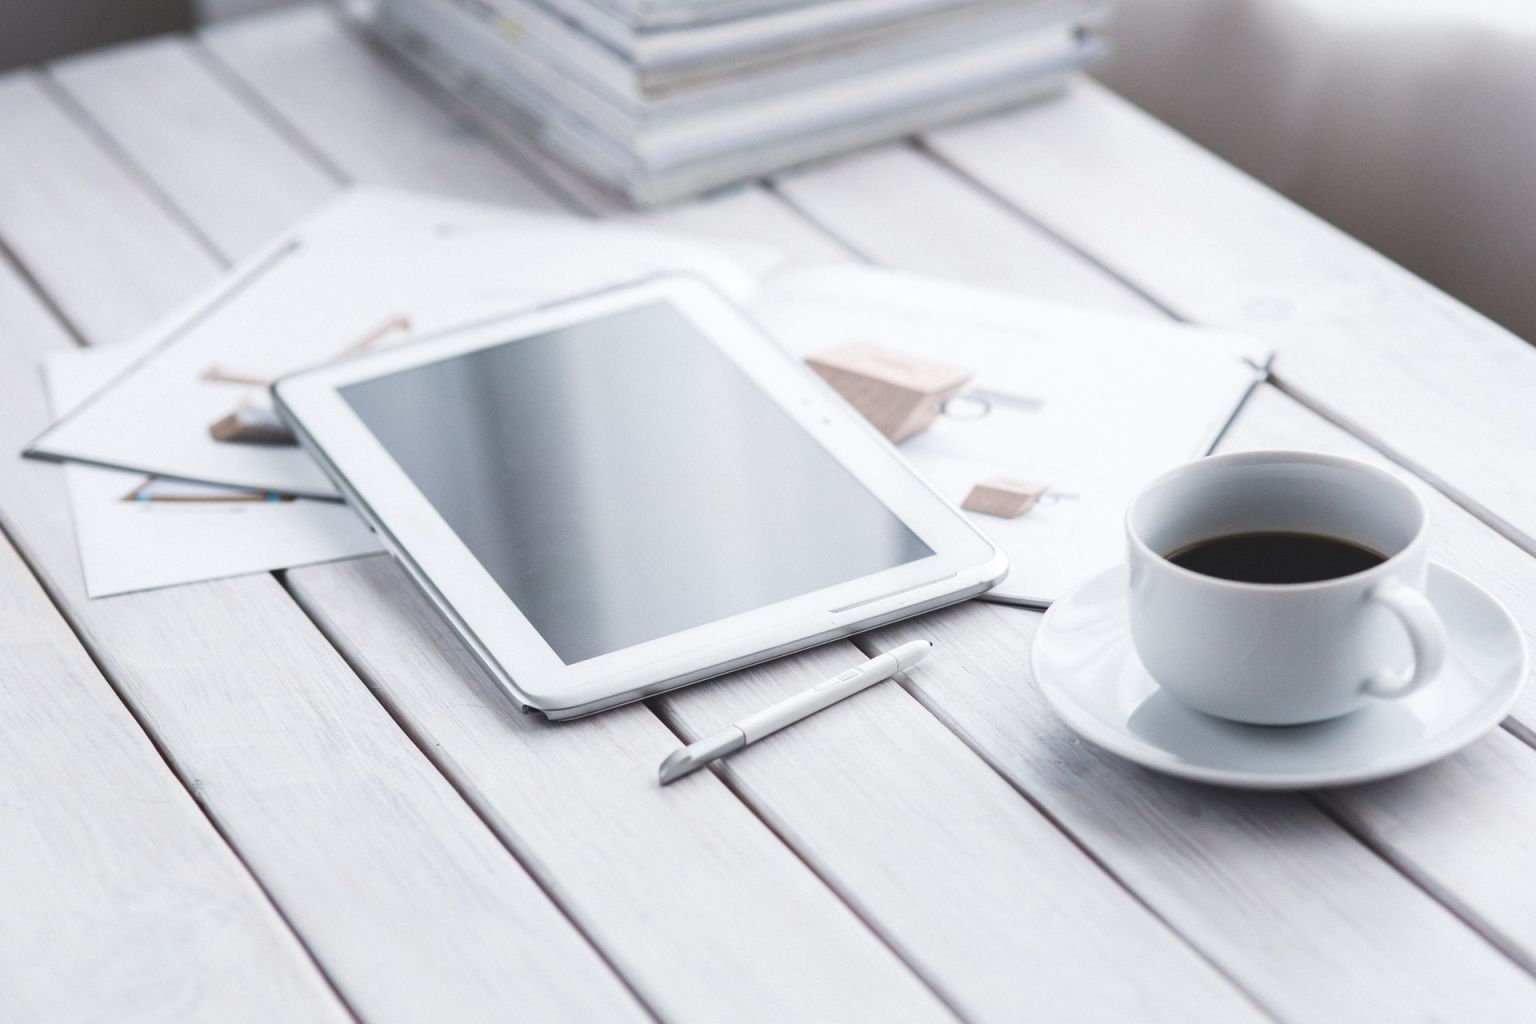 Entrepreneur's or business manager's desk with a white tablet and stylus next to a coffee cup and a few documents.